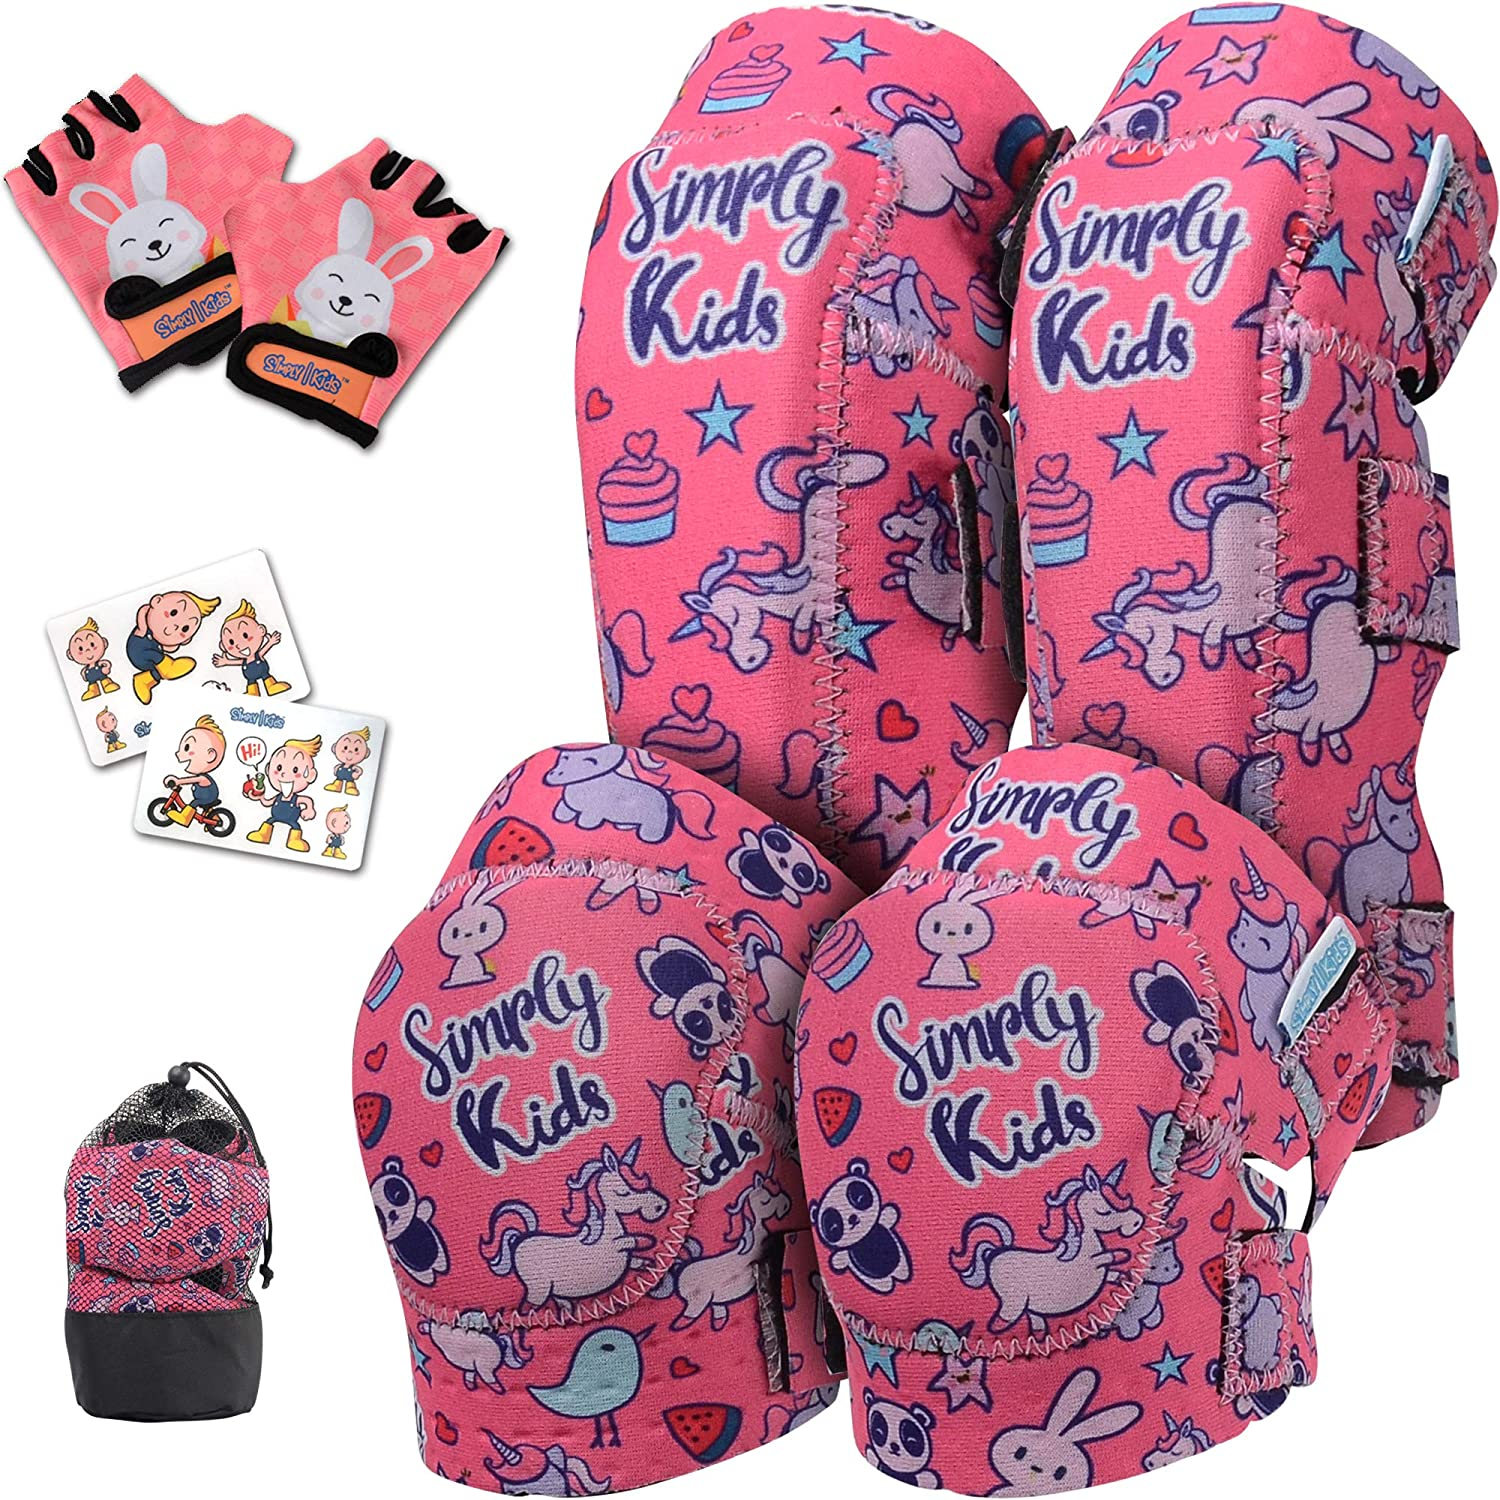 Simply kids protective gear